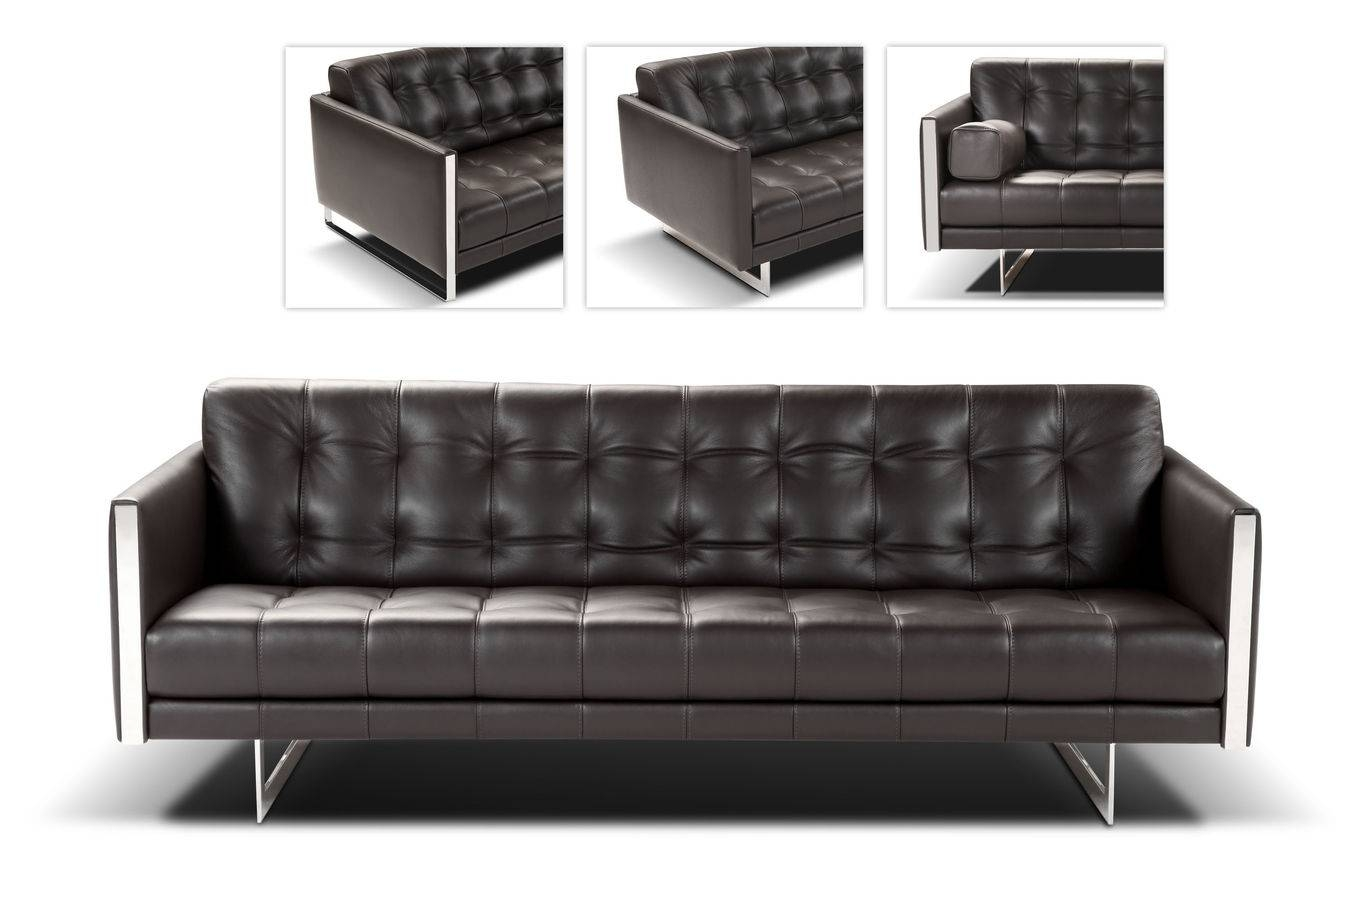 Amazing Modern Leather Sofa 97 On Sofas And Couches Ideas With Inside Contemporary Brown Leather Sofas (View 3 of 15)